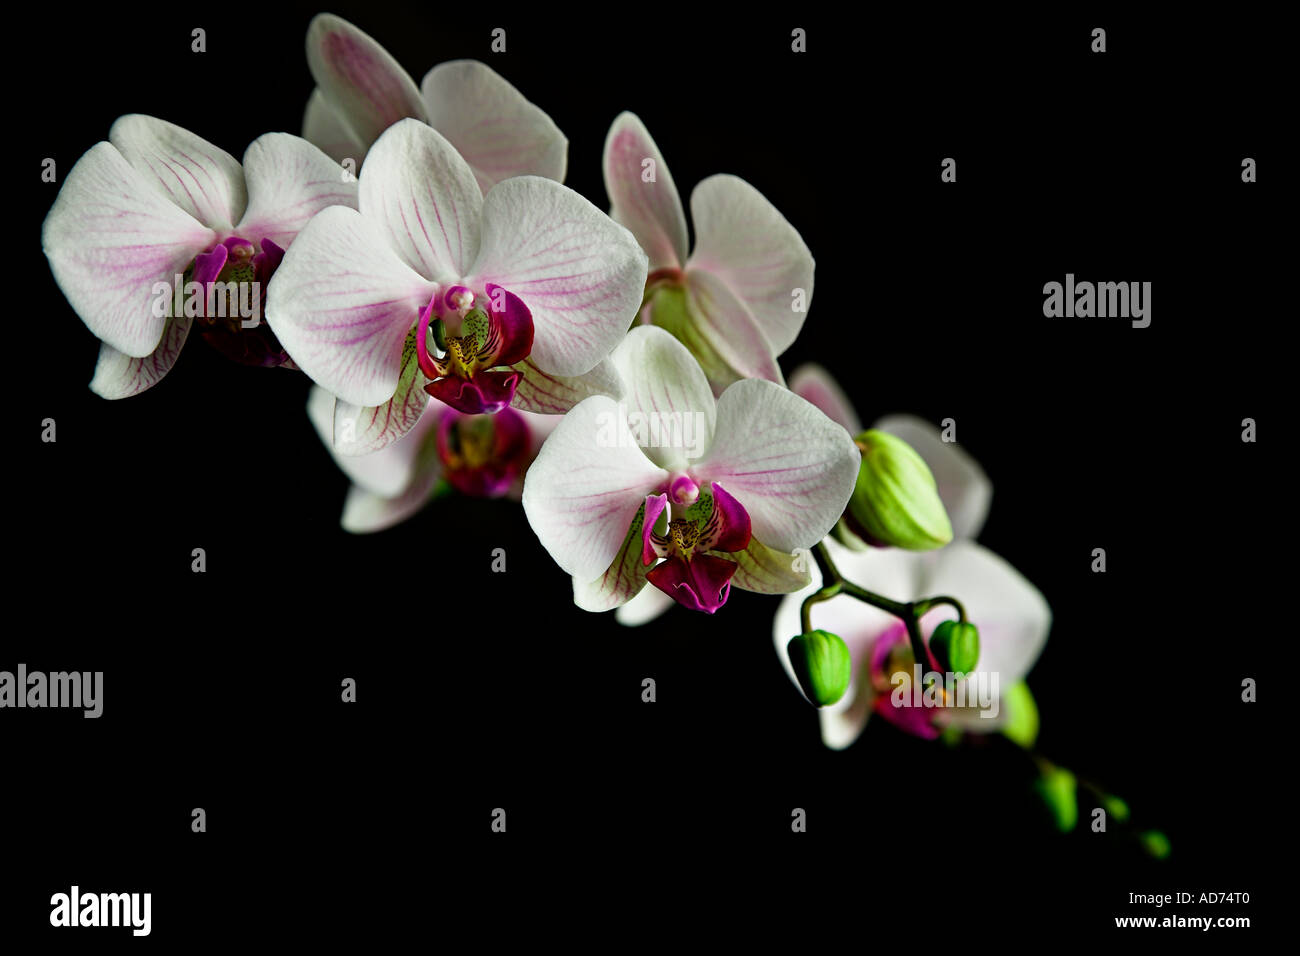 Orchids in flower - Stock Image